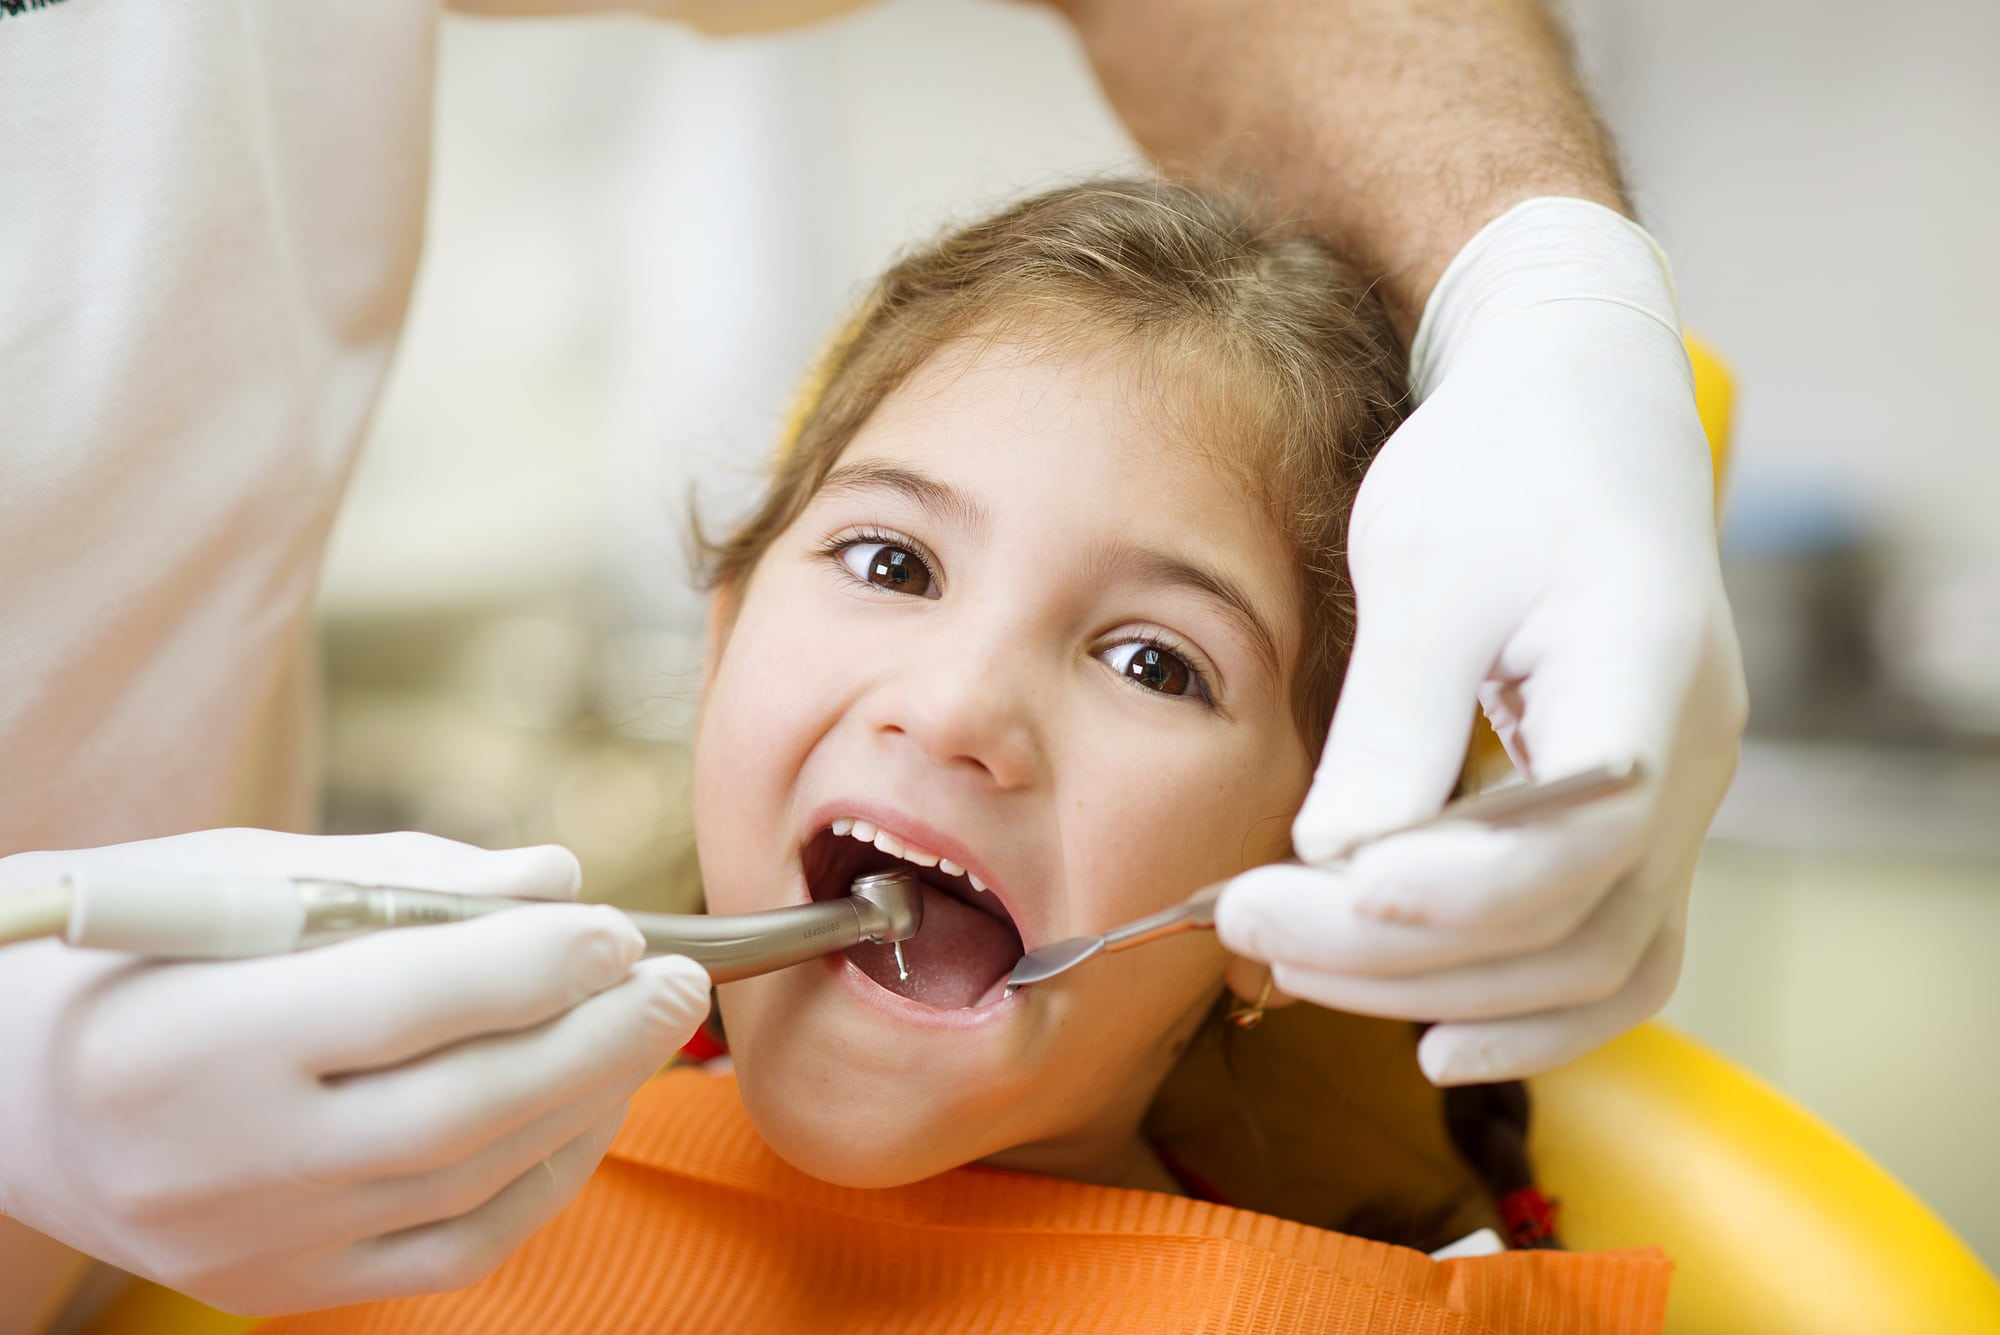 dentist teeth kids happy tooth smile Preparing Your Child For A Visit To The Dentist